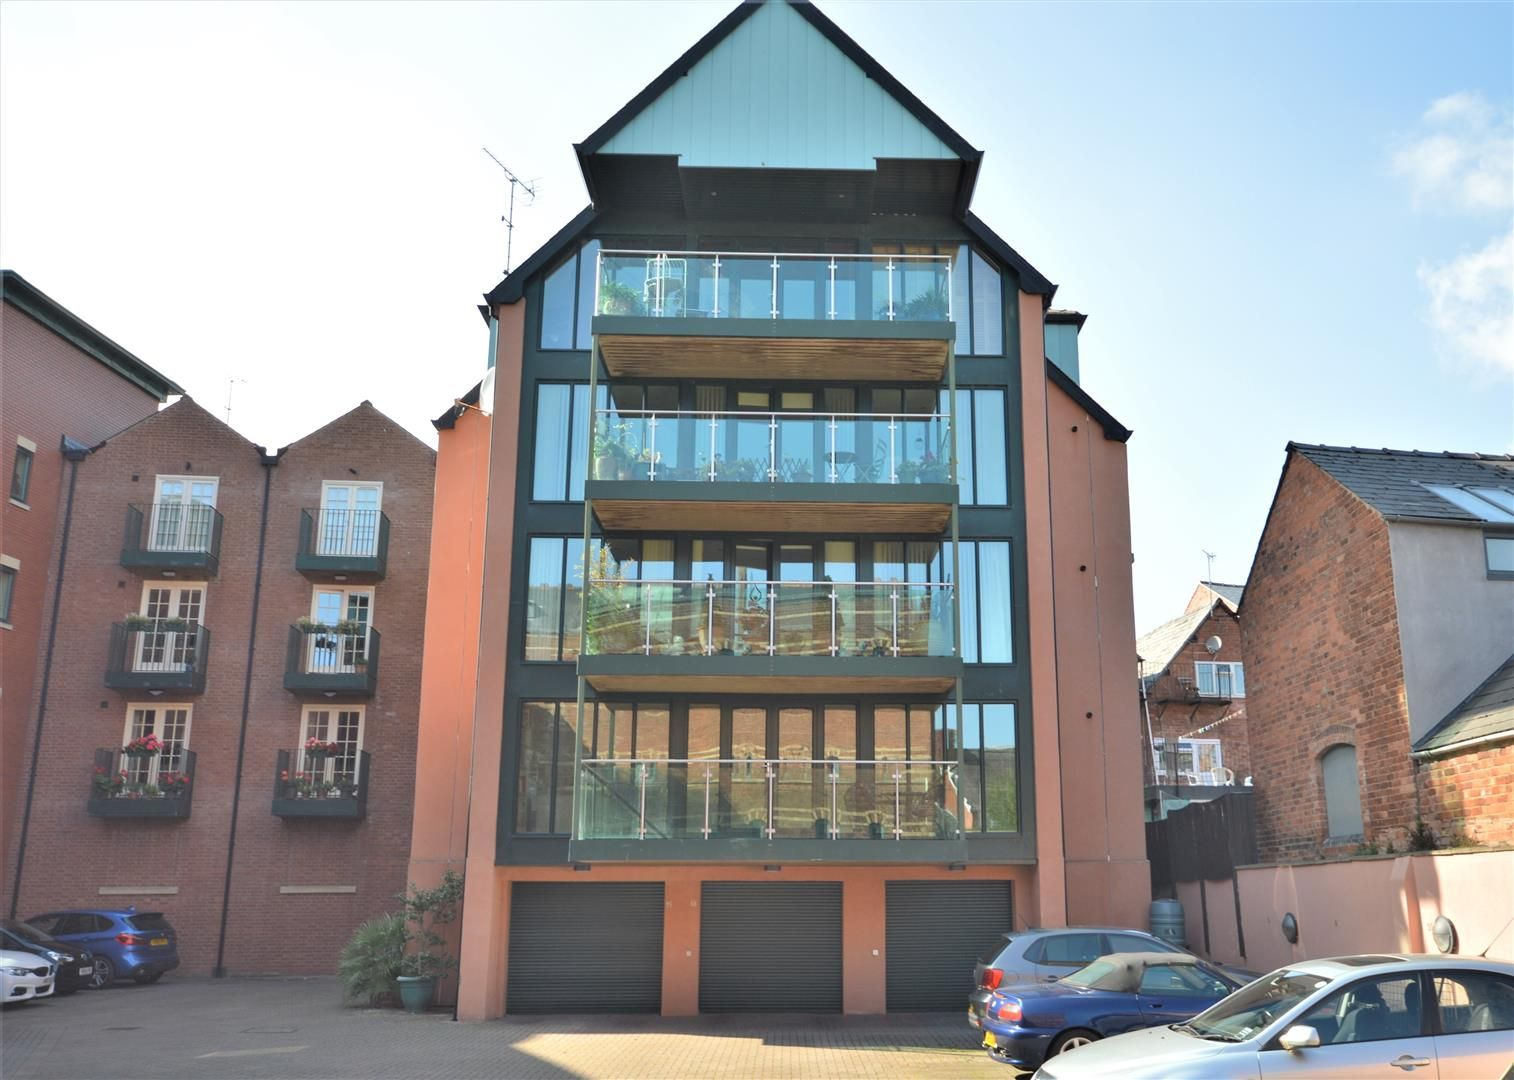 2 bed flat for sale, HR4